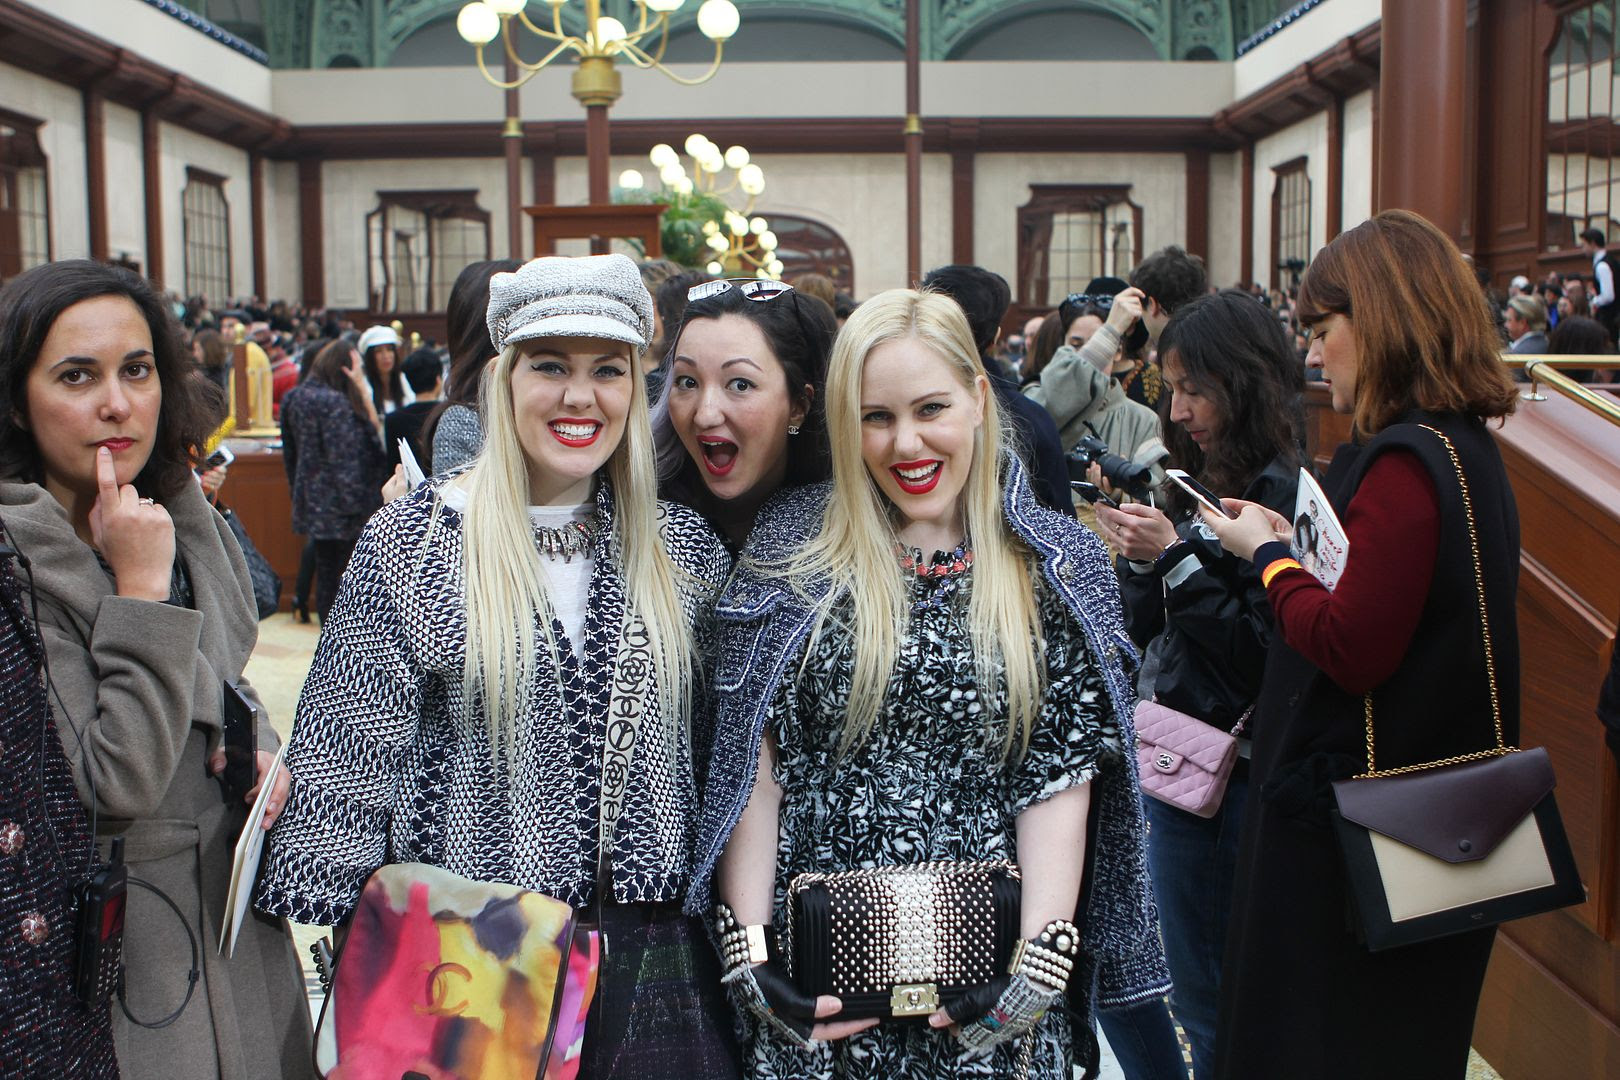 photo Chanel-Fall15-Chanel Show-Brasserie Gabrielle-Grand Palais- Brasserie-Paris-Beckermanblog-BrasserieChanel-1_zpsw8t6qexq.jpg